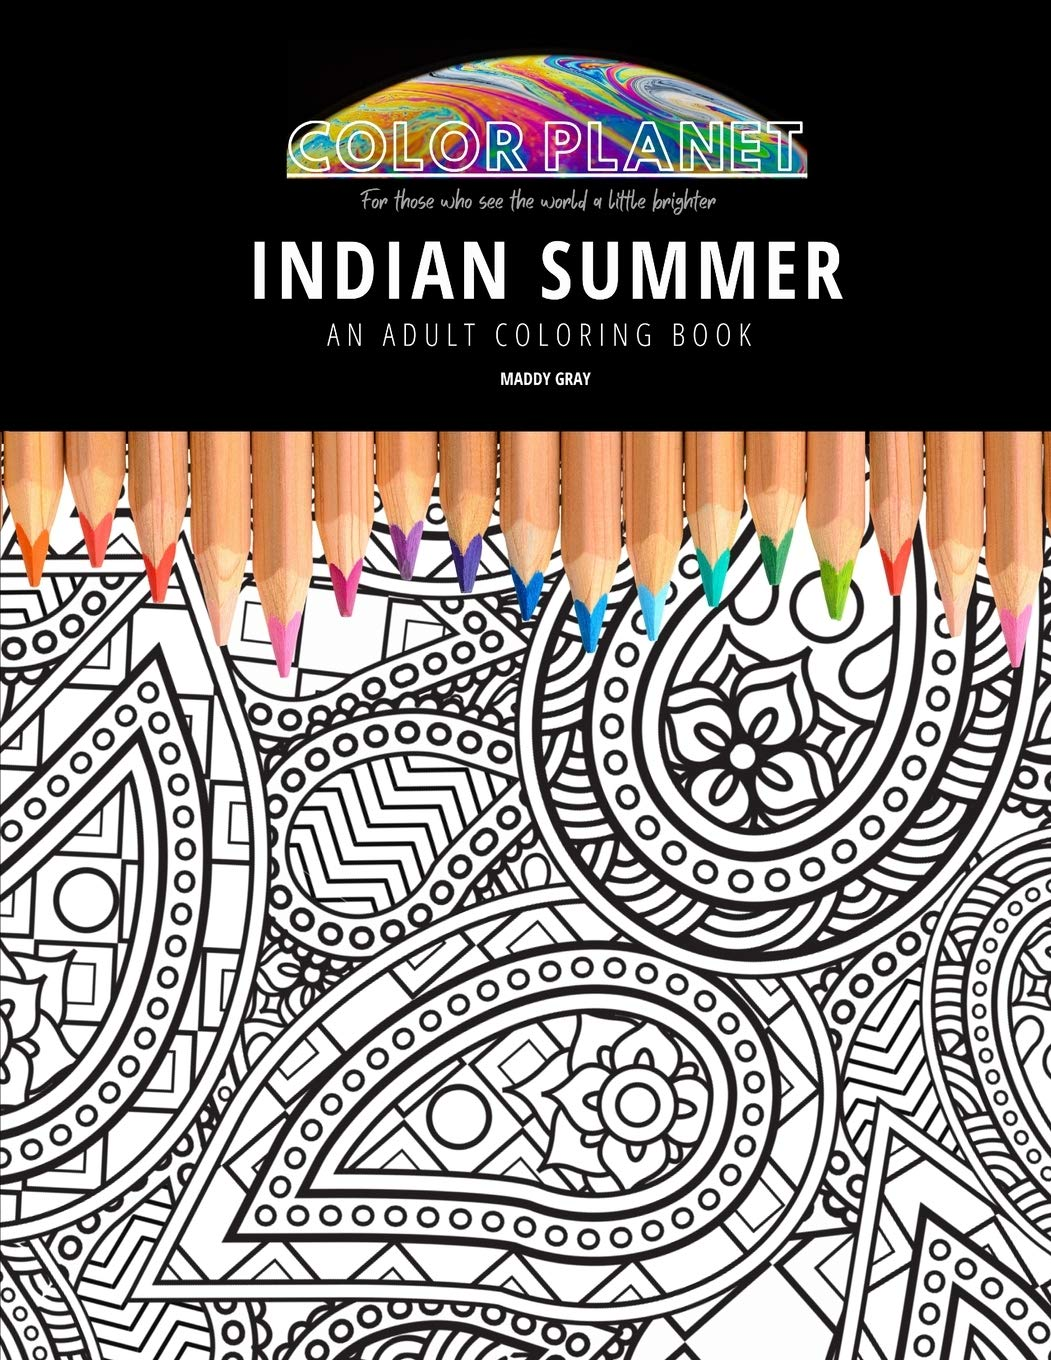 Buy Indian Summer An Adult Coloring Book An Awesome Coloring Book For Adults 1 Color Planet Book Online At Low Prices In India Indian Summer An Adult Coloring Book An Awesome